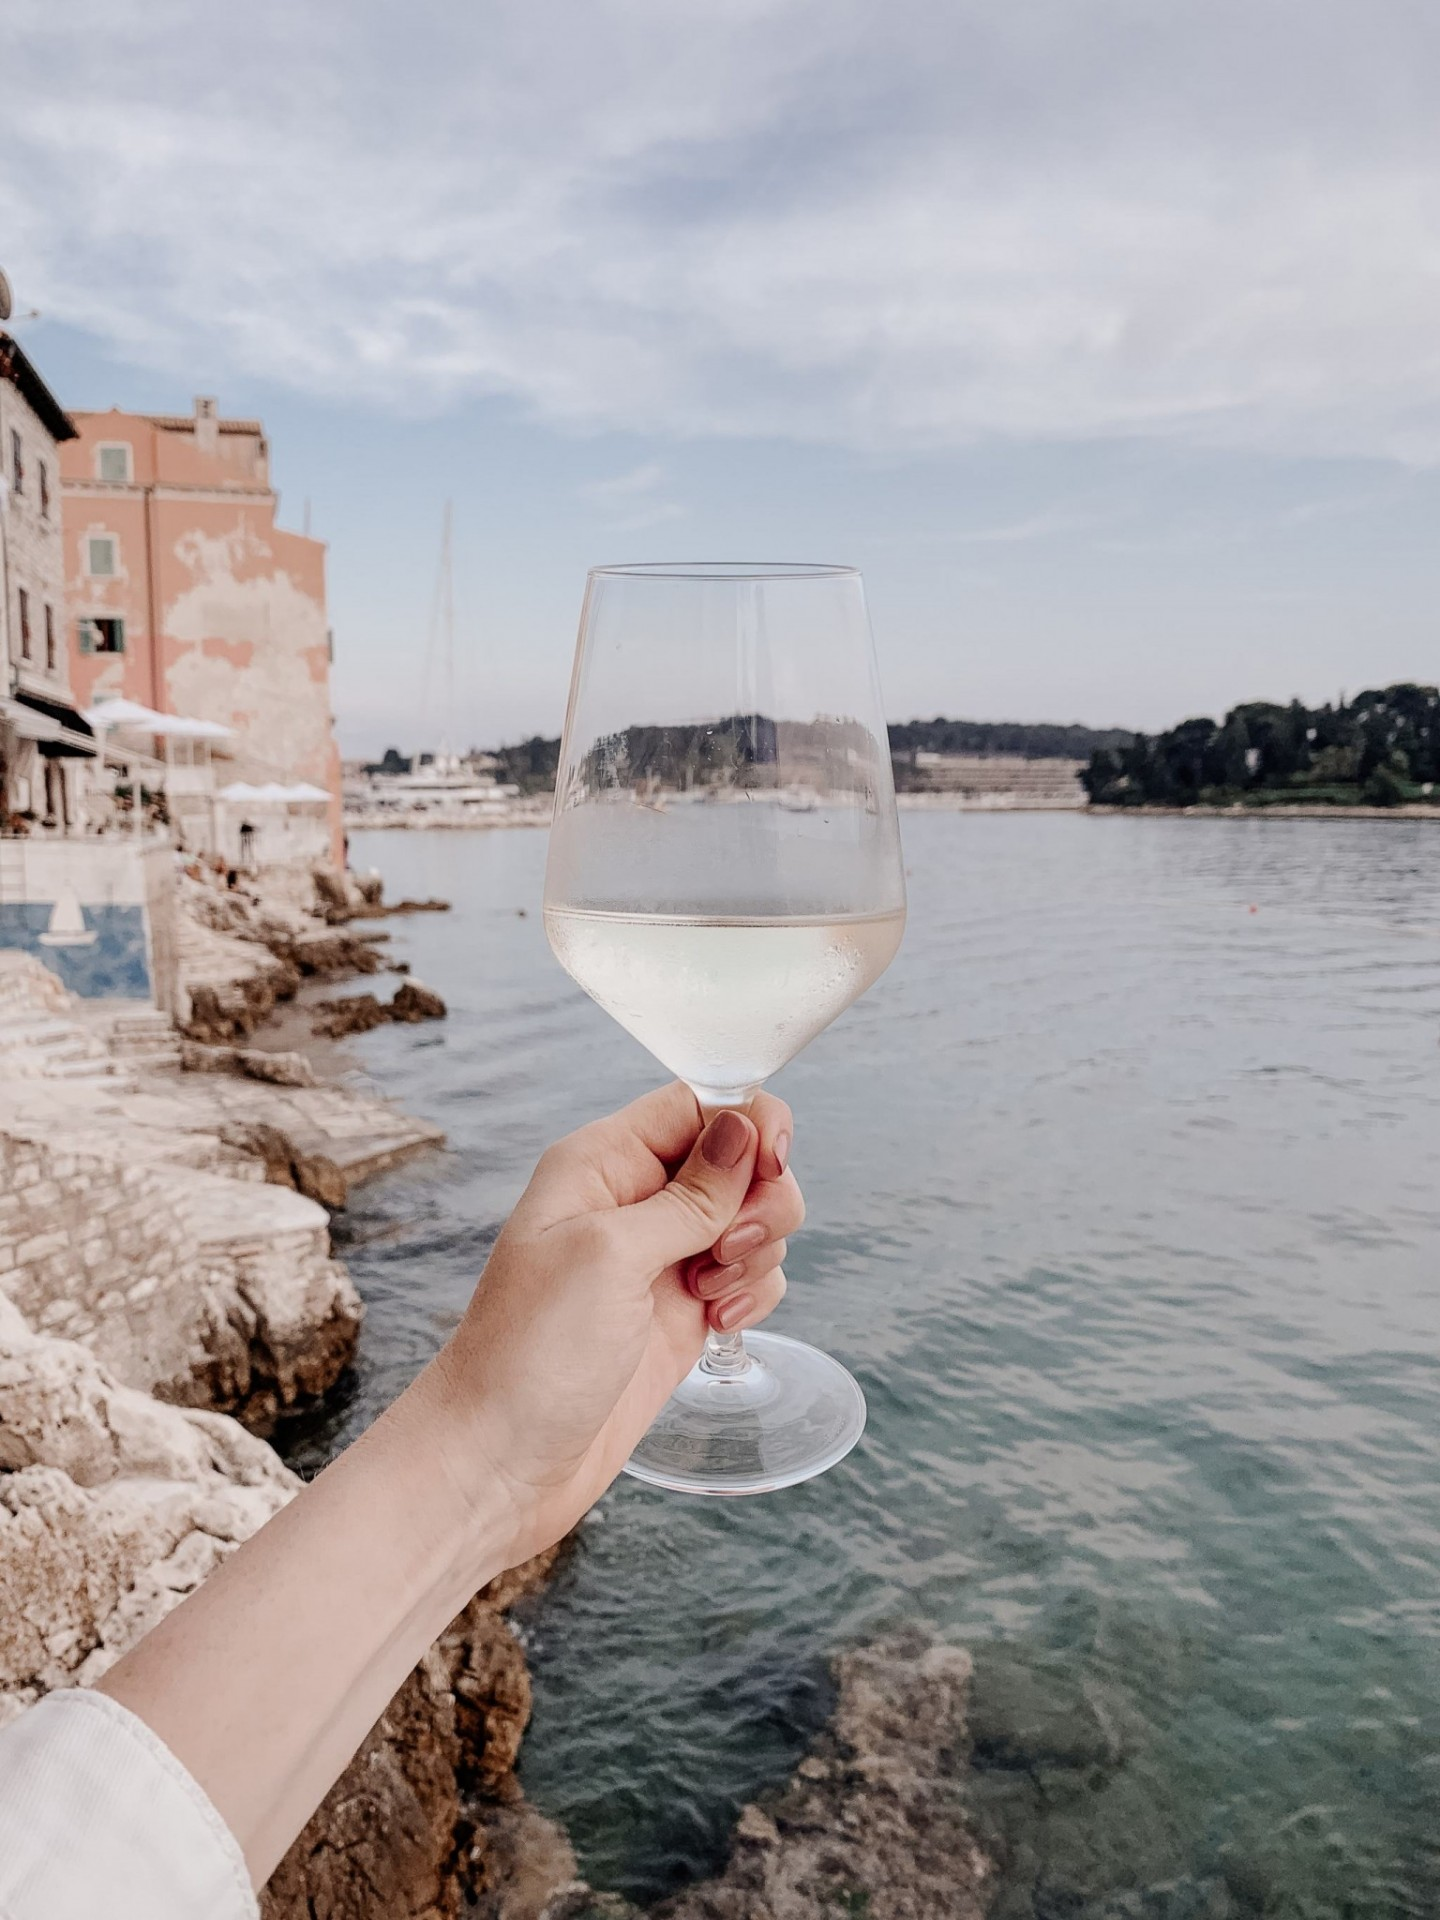 Lifestyle blogger Mollie Moore shares an Istria, Croatia travel guide. | Istria, Croatia Travel guide by popular London fashion and travel blogger Mollie Moore: image of a woman extending her arm out and holding a glass of white wine over the Adriatic Sea in Istria, Croatia.